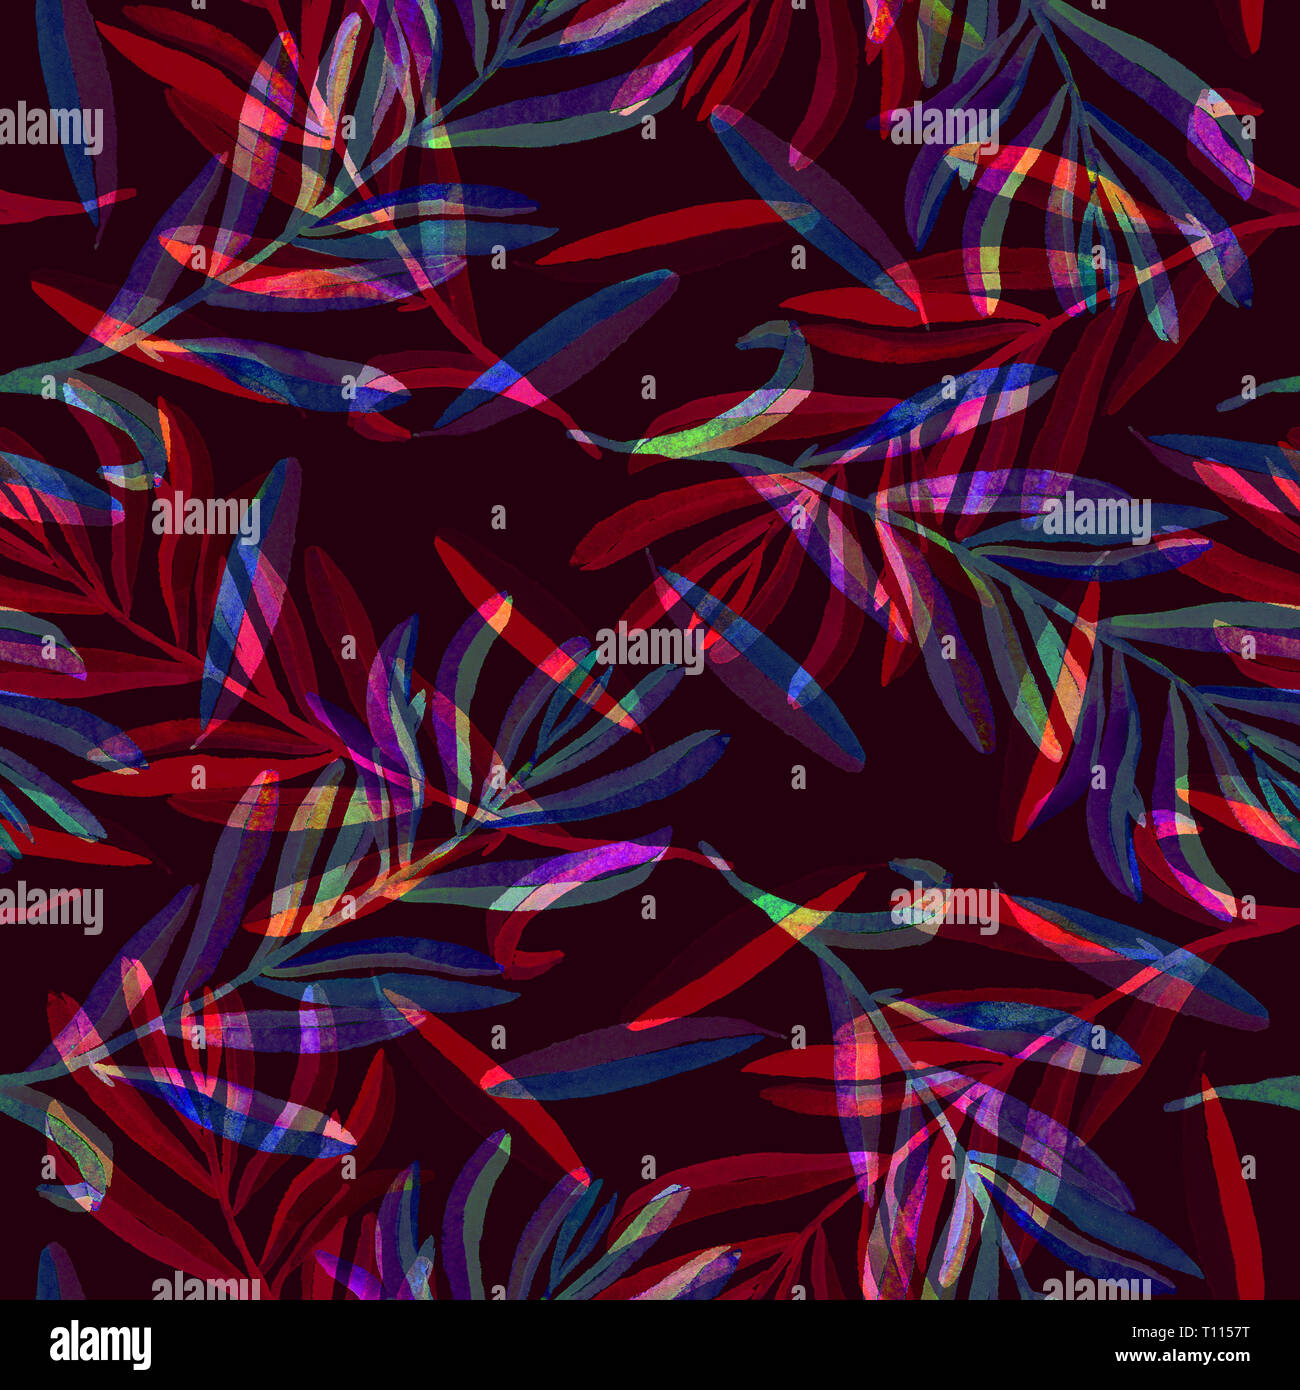 Branches With Red Blue Purple Leaves Seamless Pattern Design